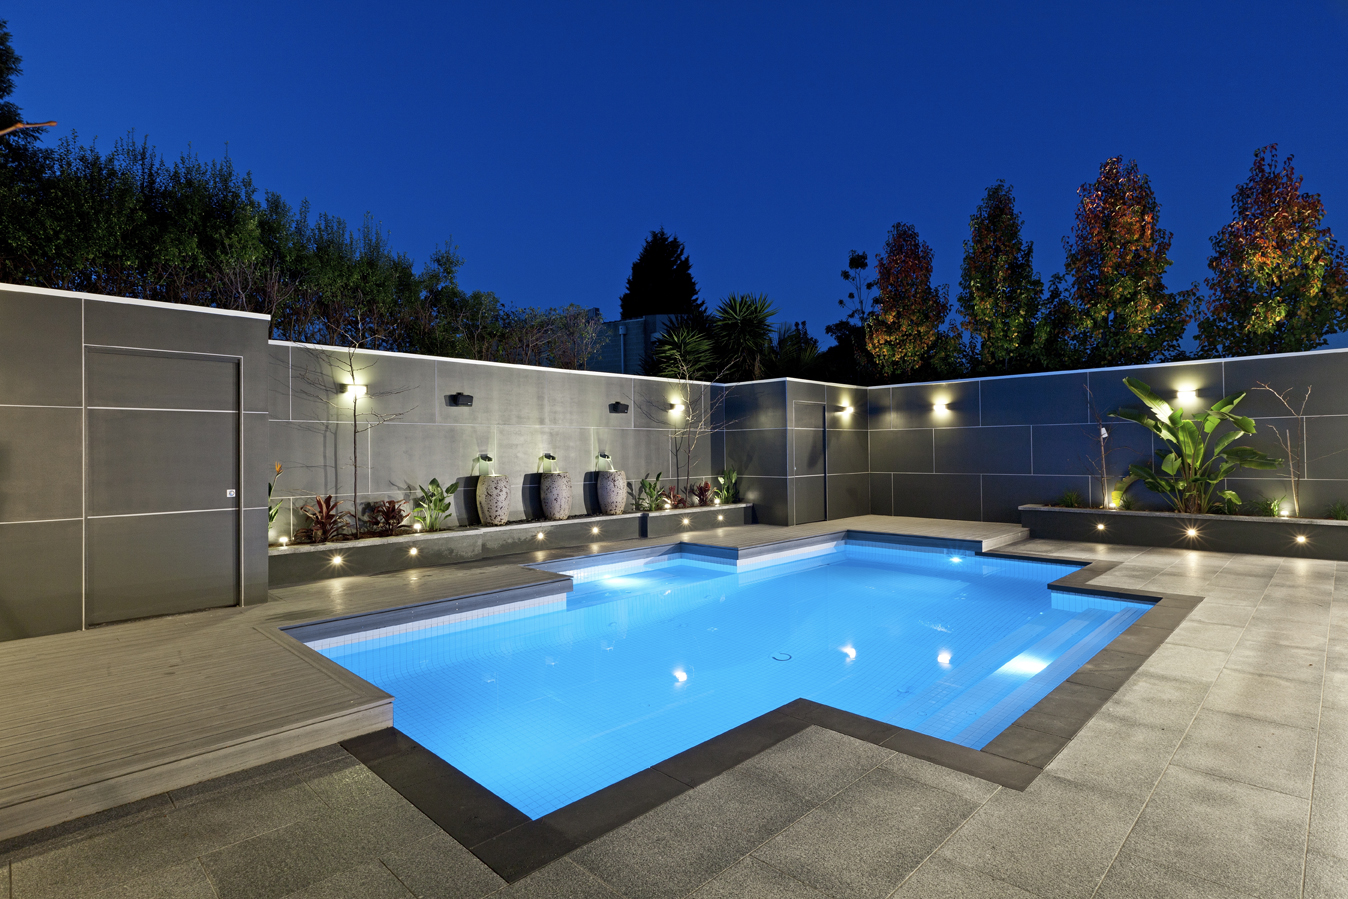 Backyard landscaping ideas swimming pool design for Beautiful house designs with swimming pool